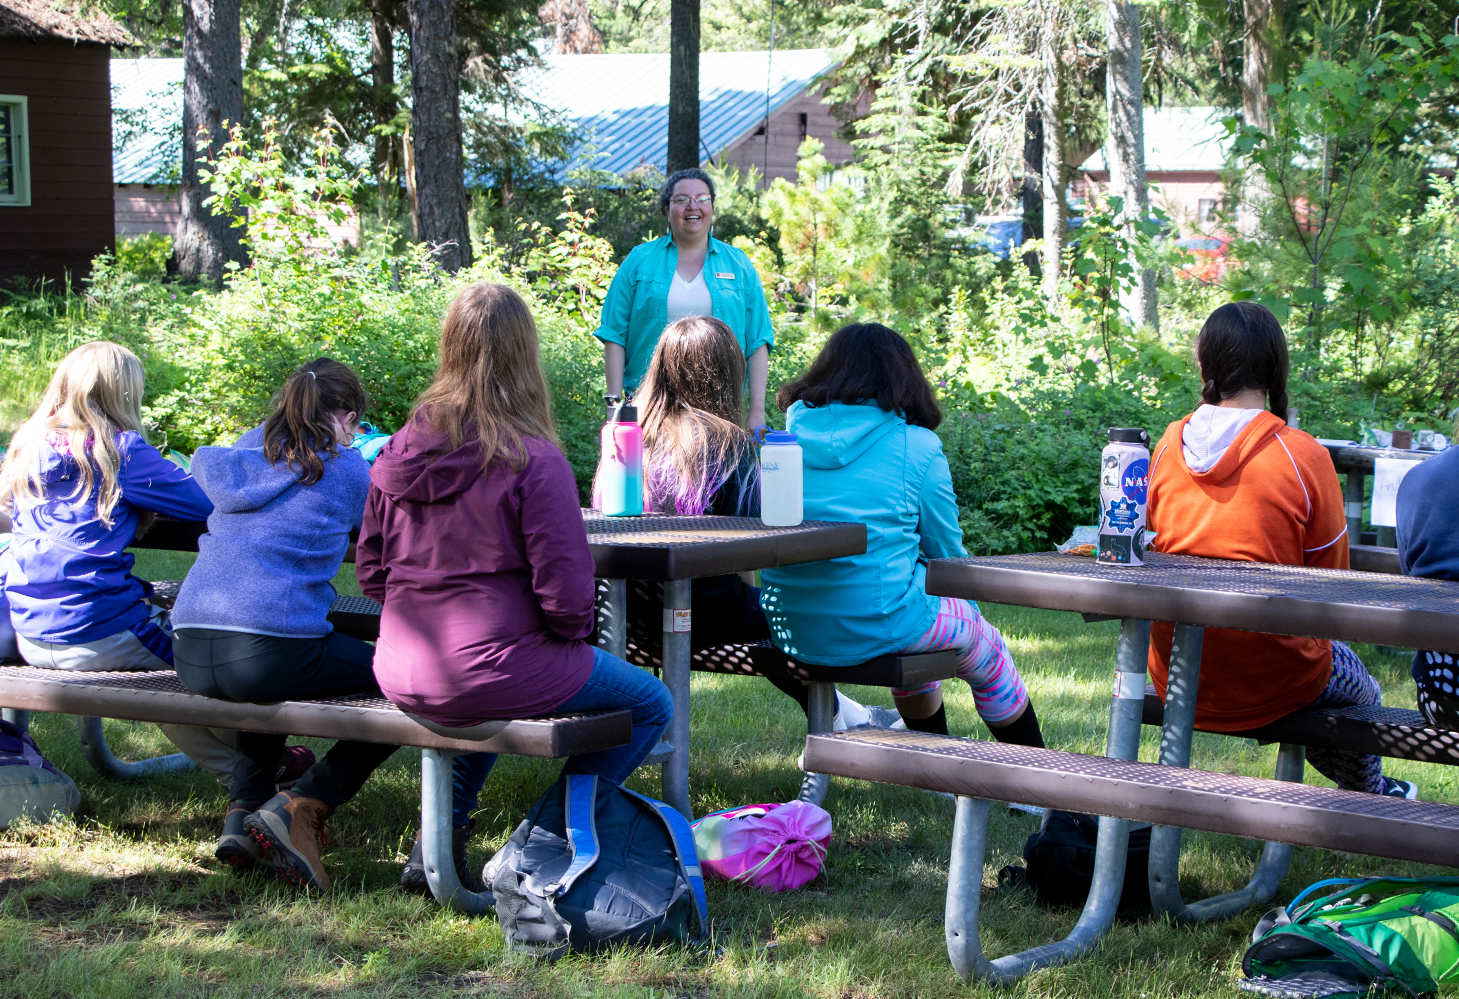 A group of young girls attend the Women In Science Career Fair in Glacier National Park